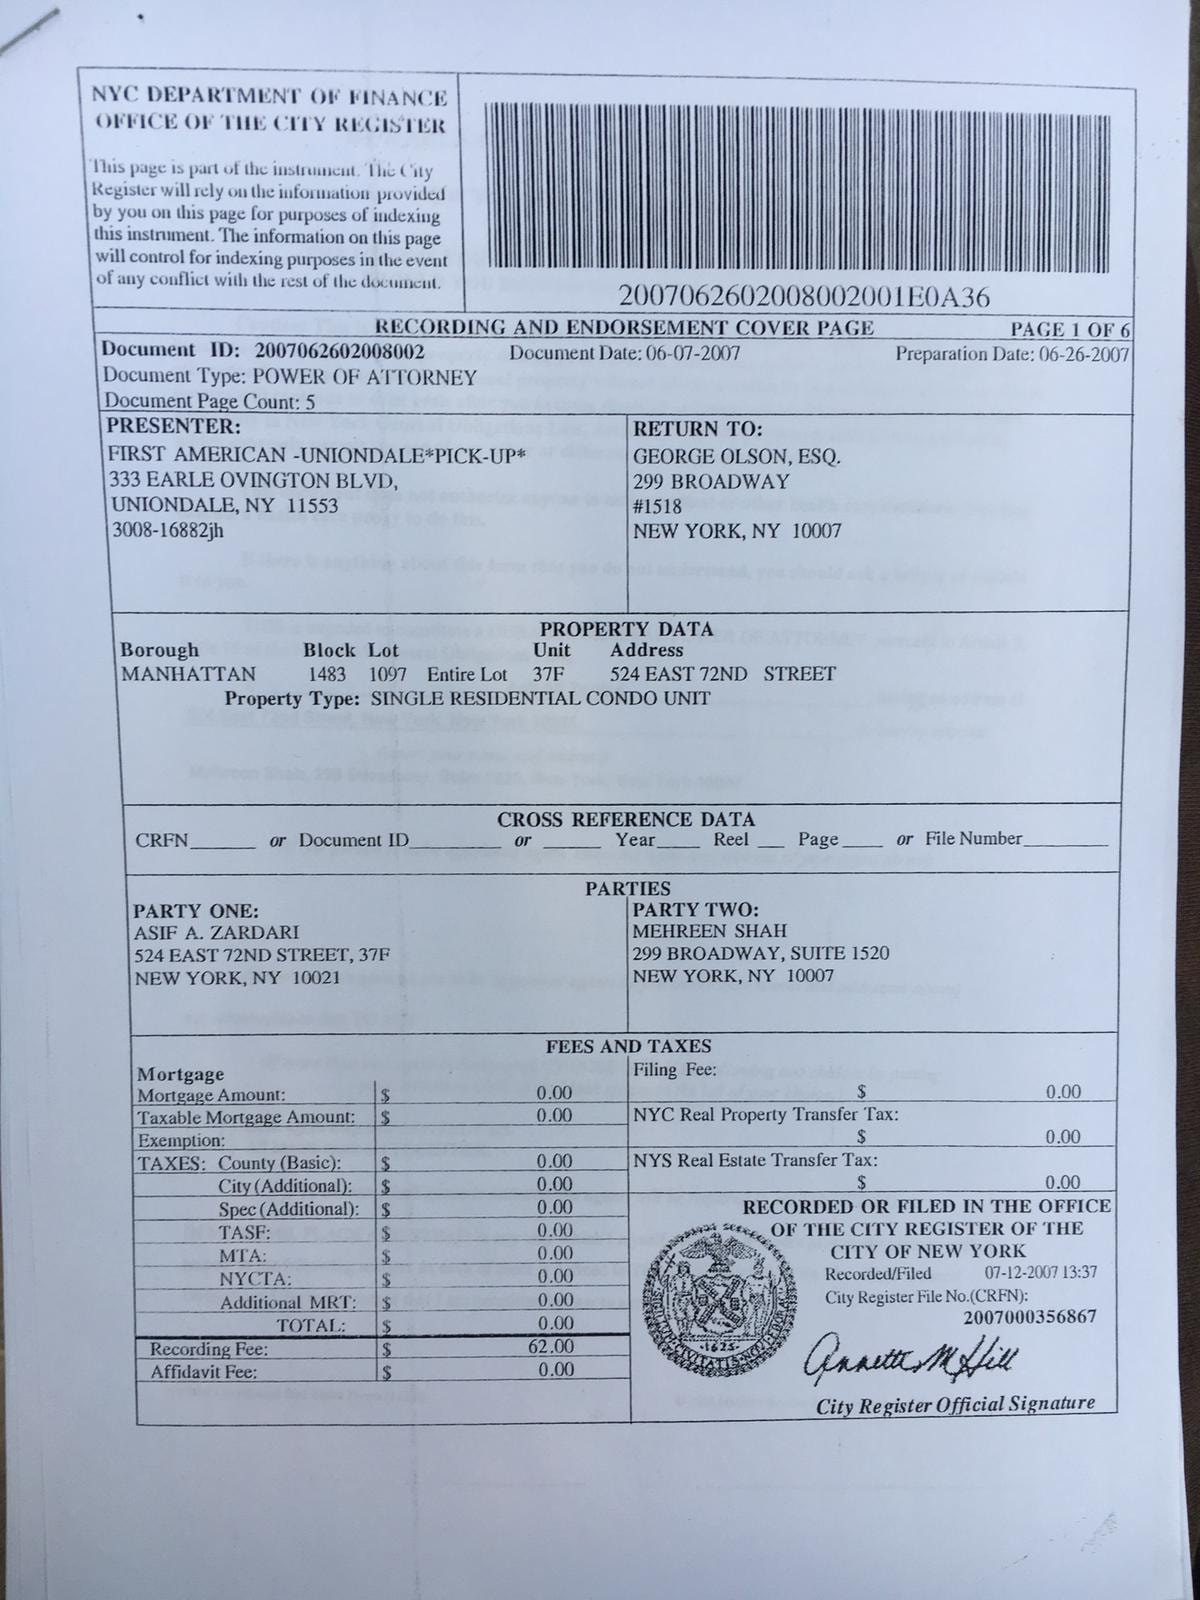 Another document submitted by PTI to show Zardari's ownership of the flat.